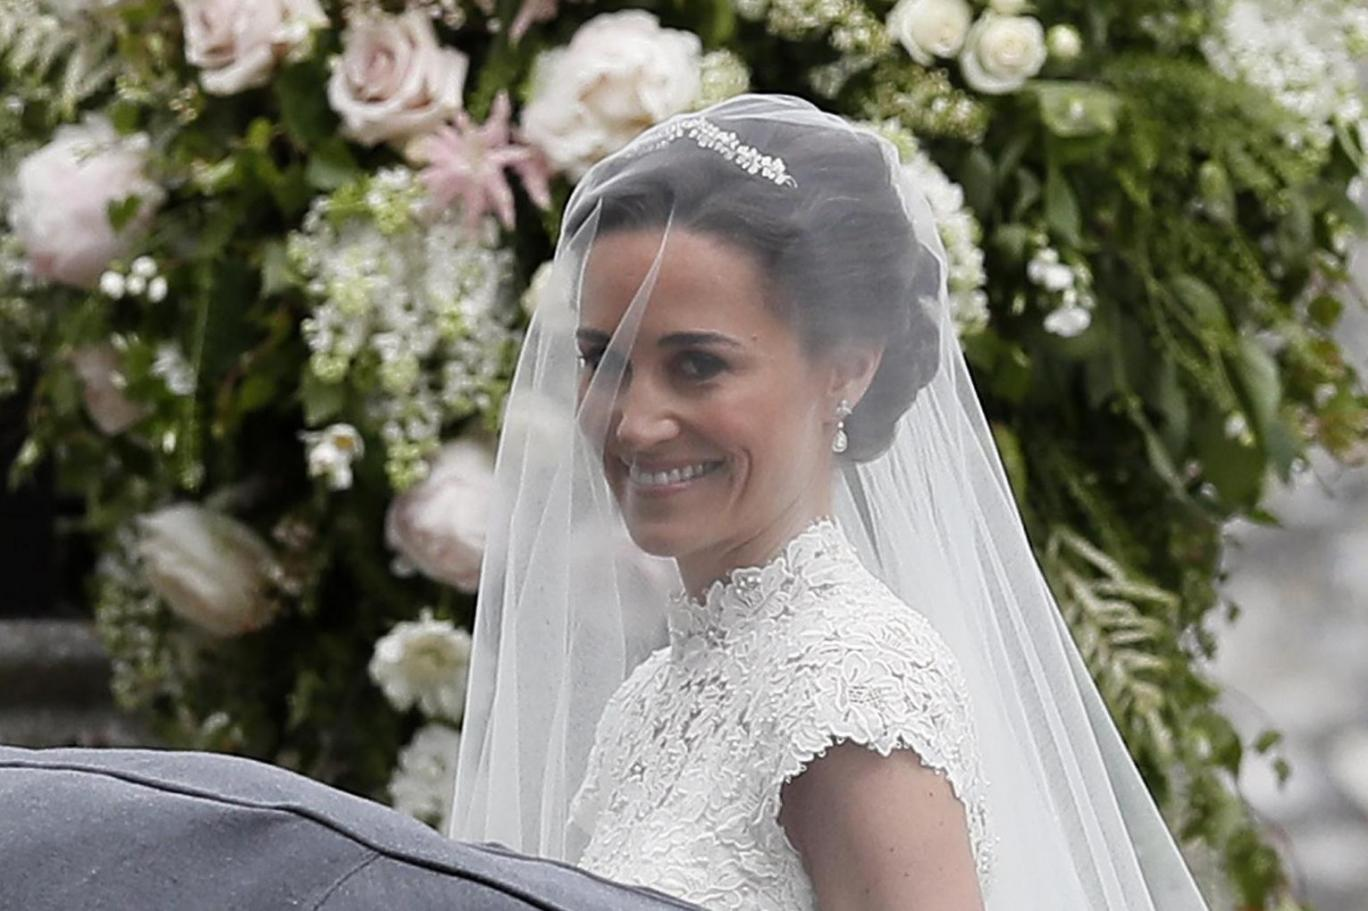 Stunning bride Pippa and groom James Matthews arrive at ... - photo#14